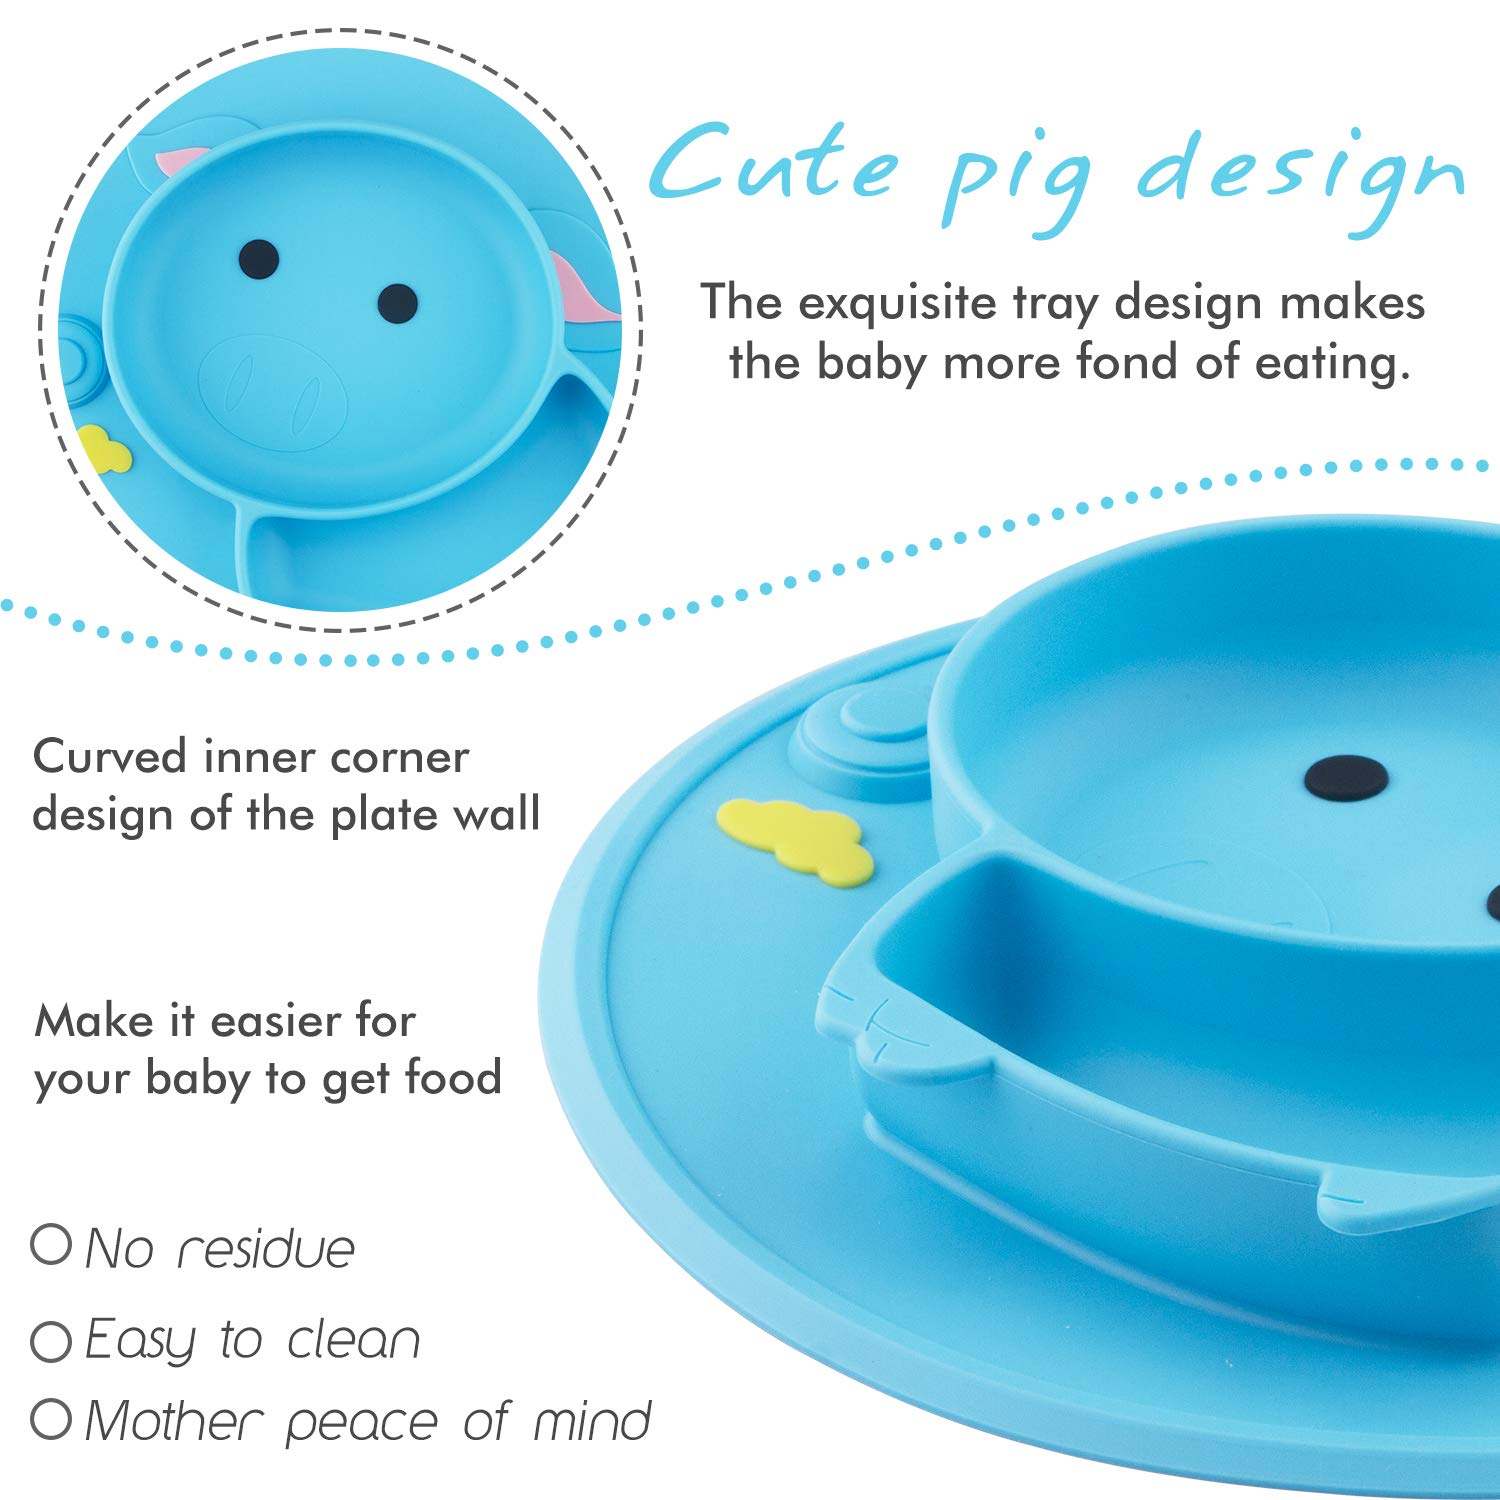 Portable Baby Plate for Toddlers and Kids Dishwasher and Microwave Safe Silicone Placemat 22 * 20 * 2.5cm BPA-Free FDA Approved Strong Suction Plates for Toddlers Qshare Toddler Plate